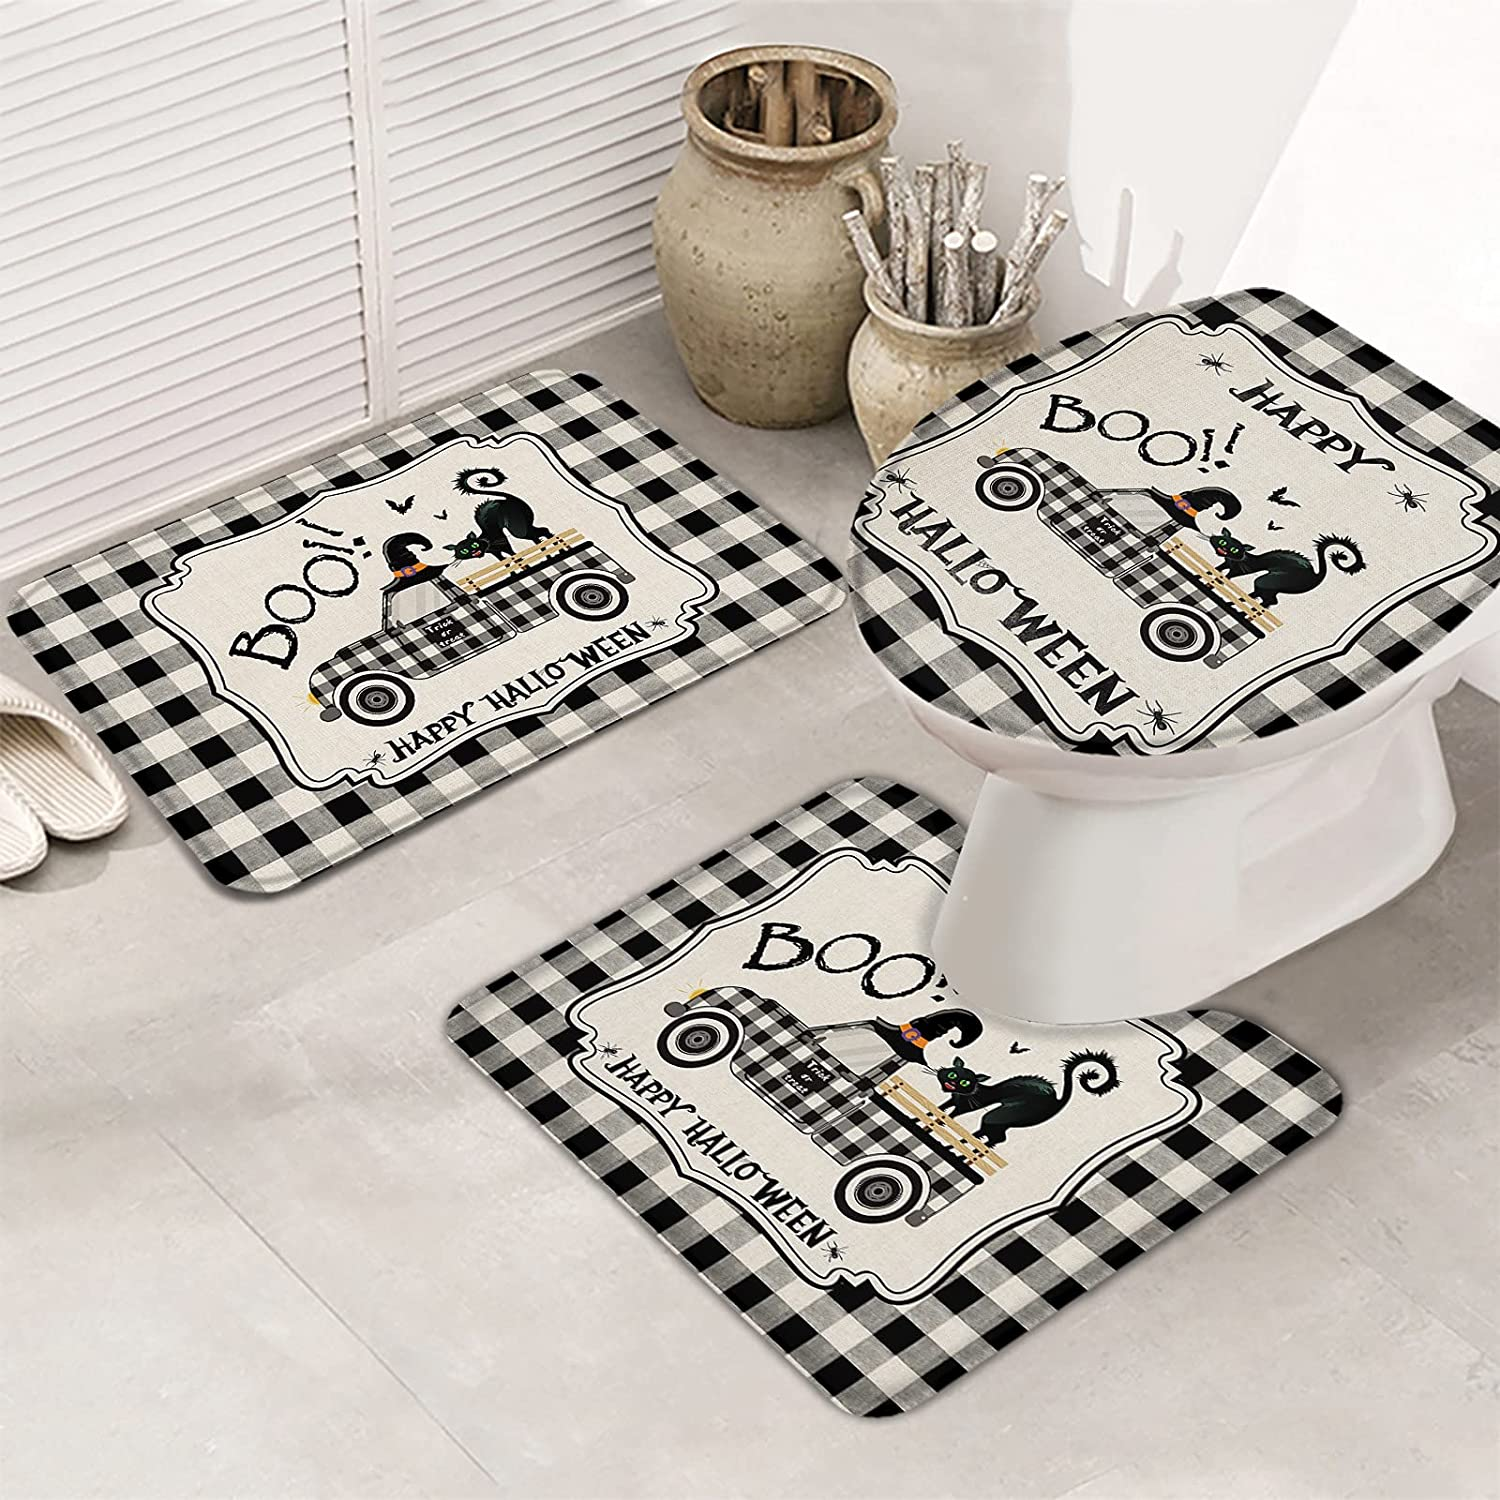 OneHoney Bathroom Rugs Ranking TOP6 Set Farm Truck N Black Cat New product! New type with Halloween